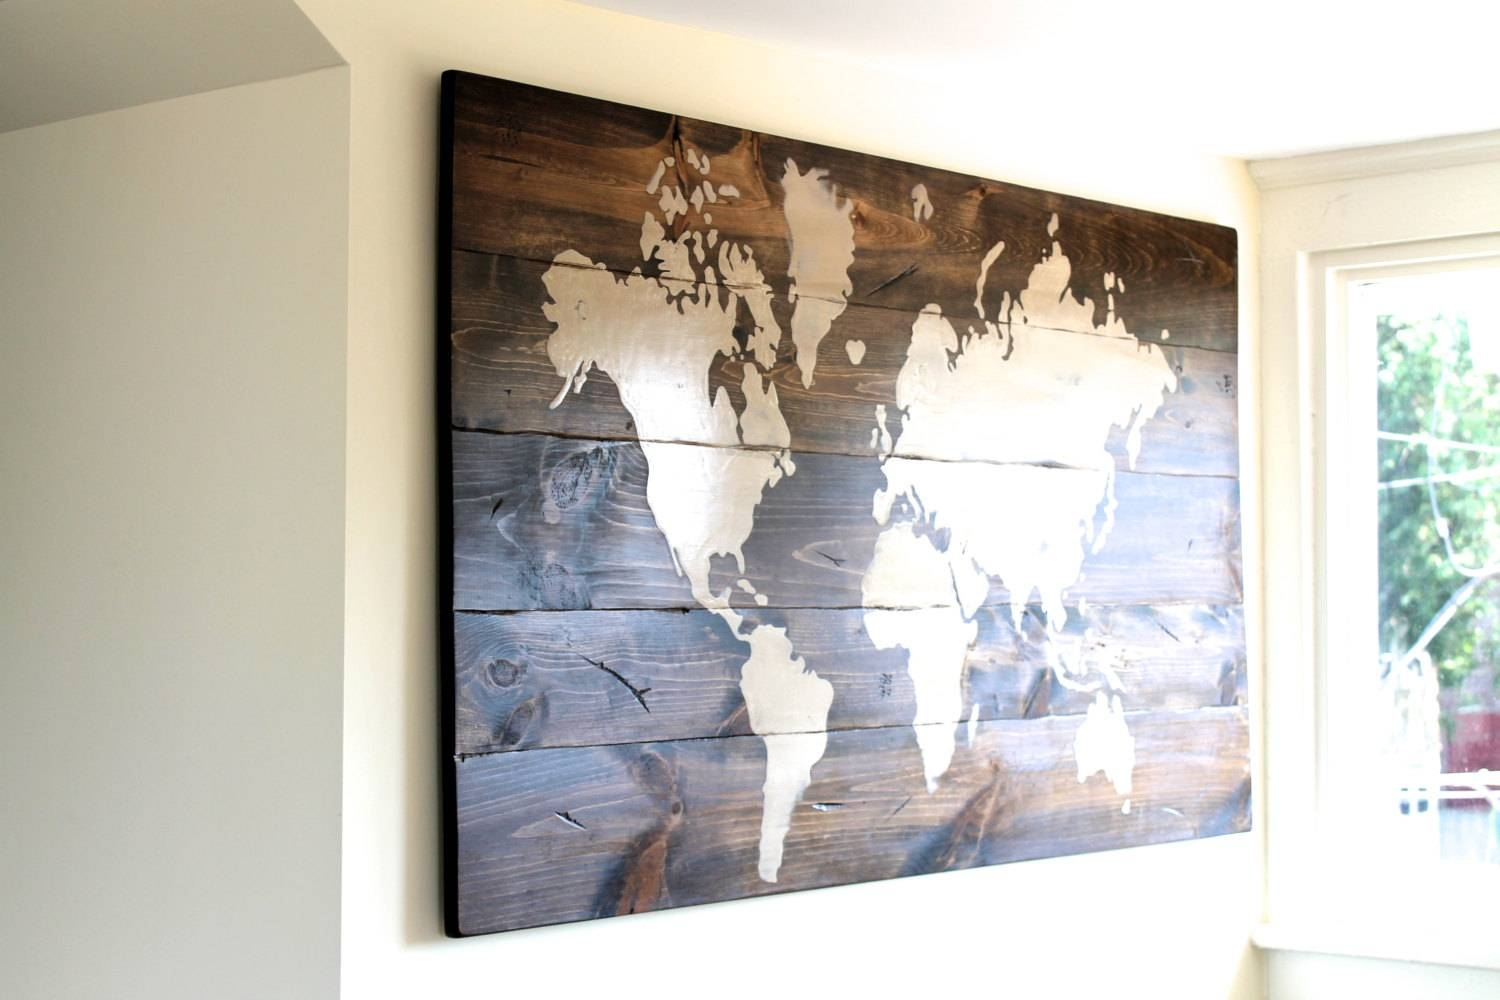 Wall Art Design: Map Wall Art World Map Sign Custom Sign Wooden For Best And Newest Map Wall Art Maps (View 15 of 20)